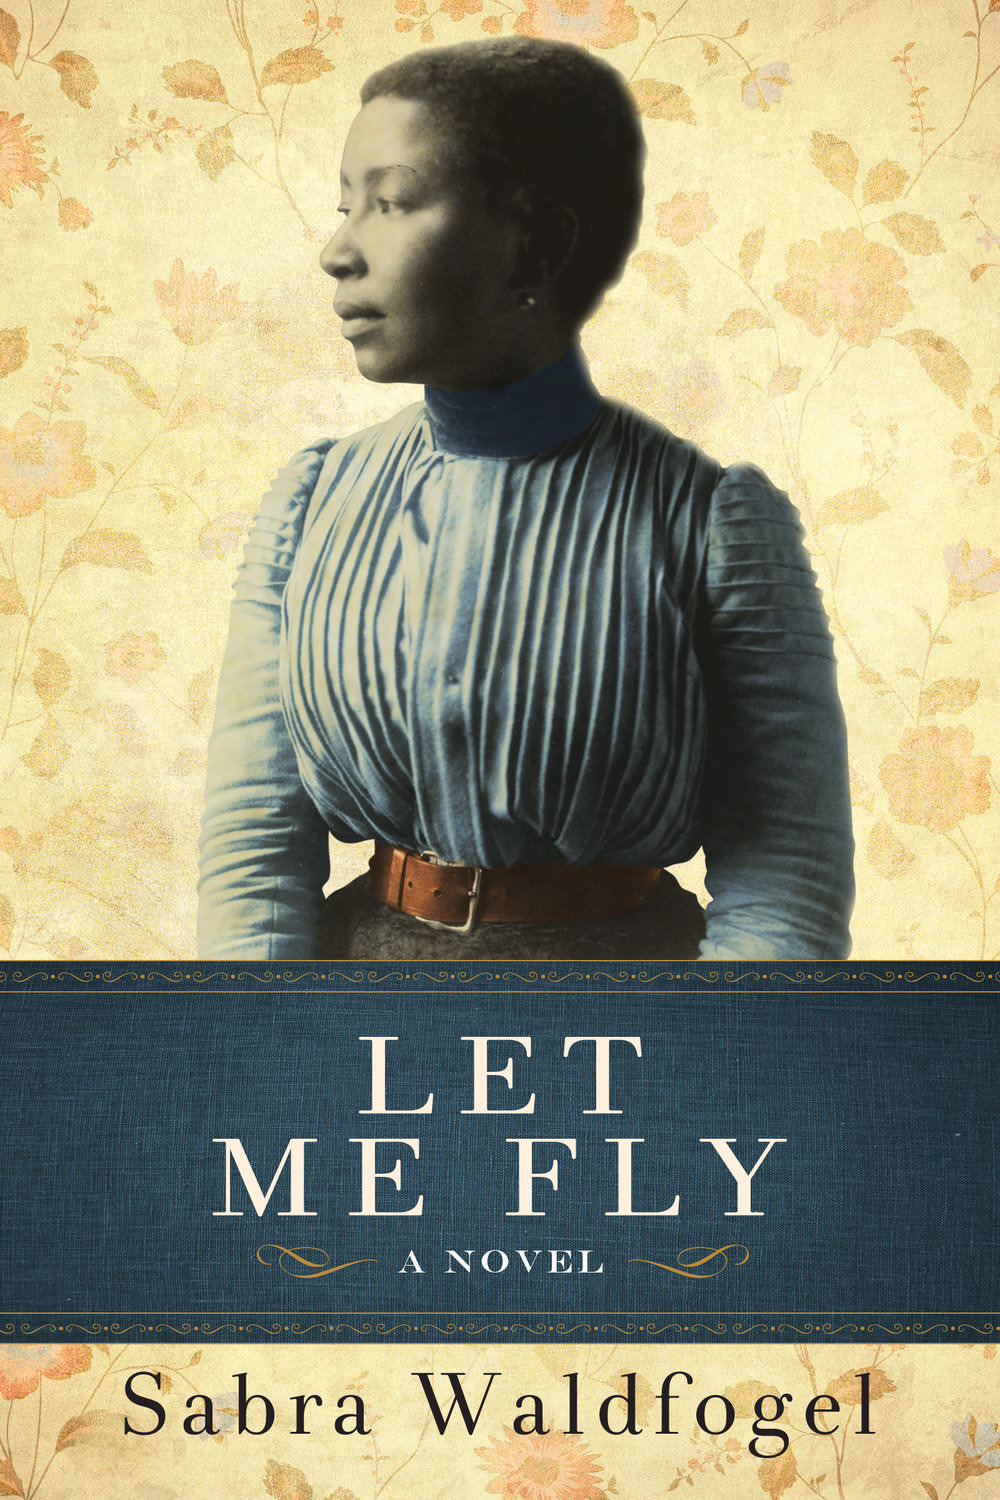 Let Me Fly by Sabra Waldfogel - historical novel about Georgia after the Civil War